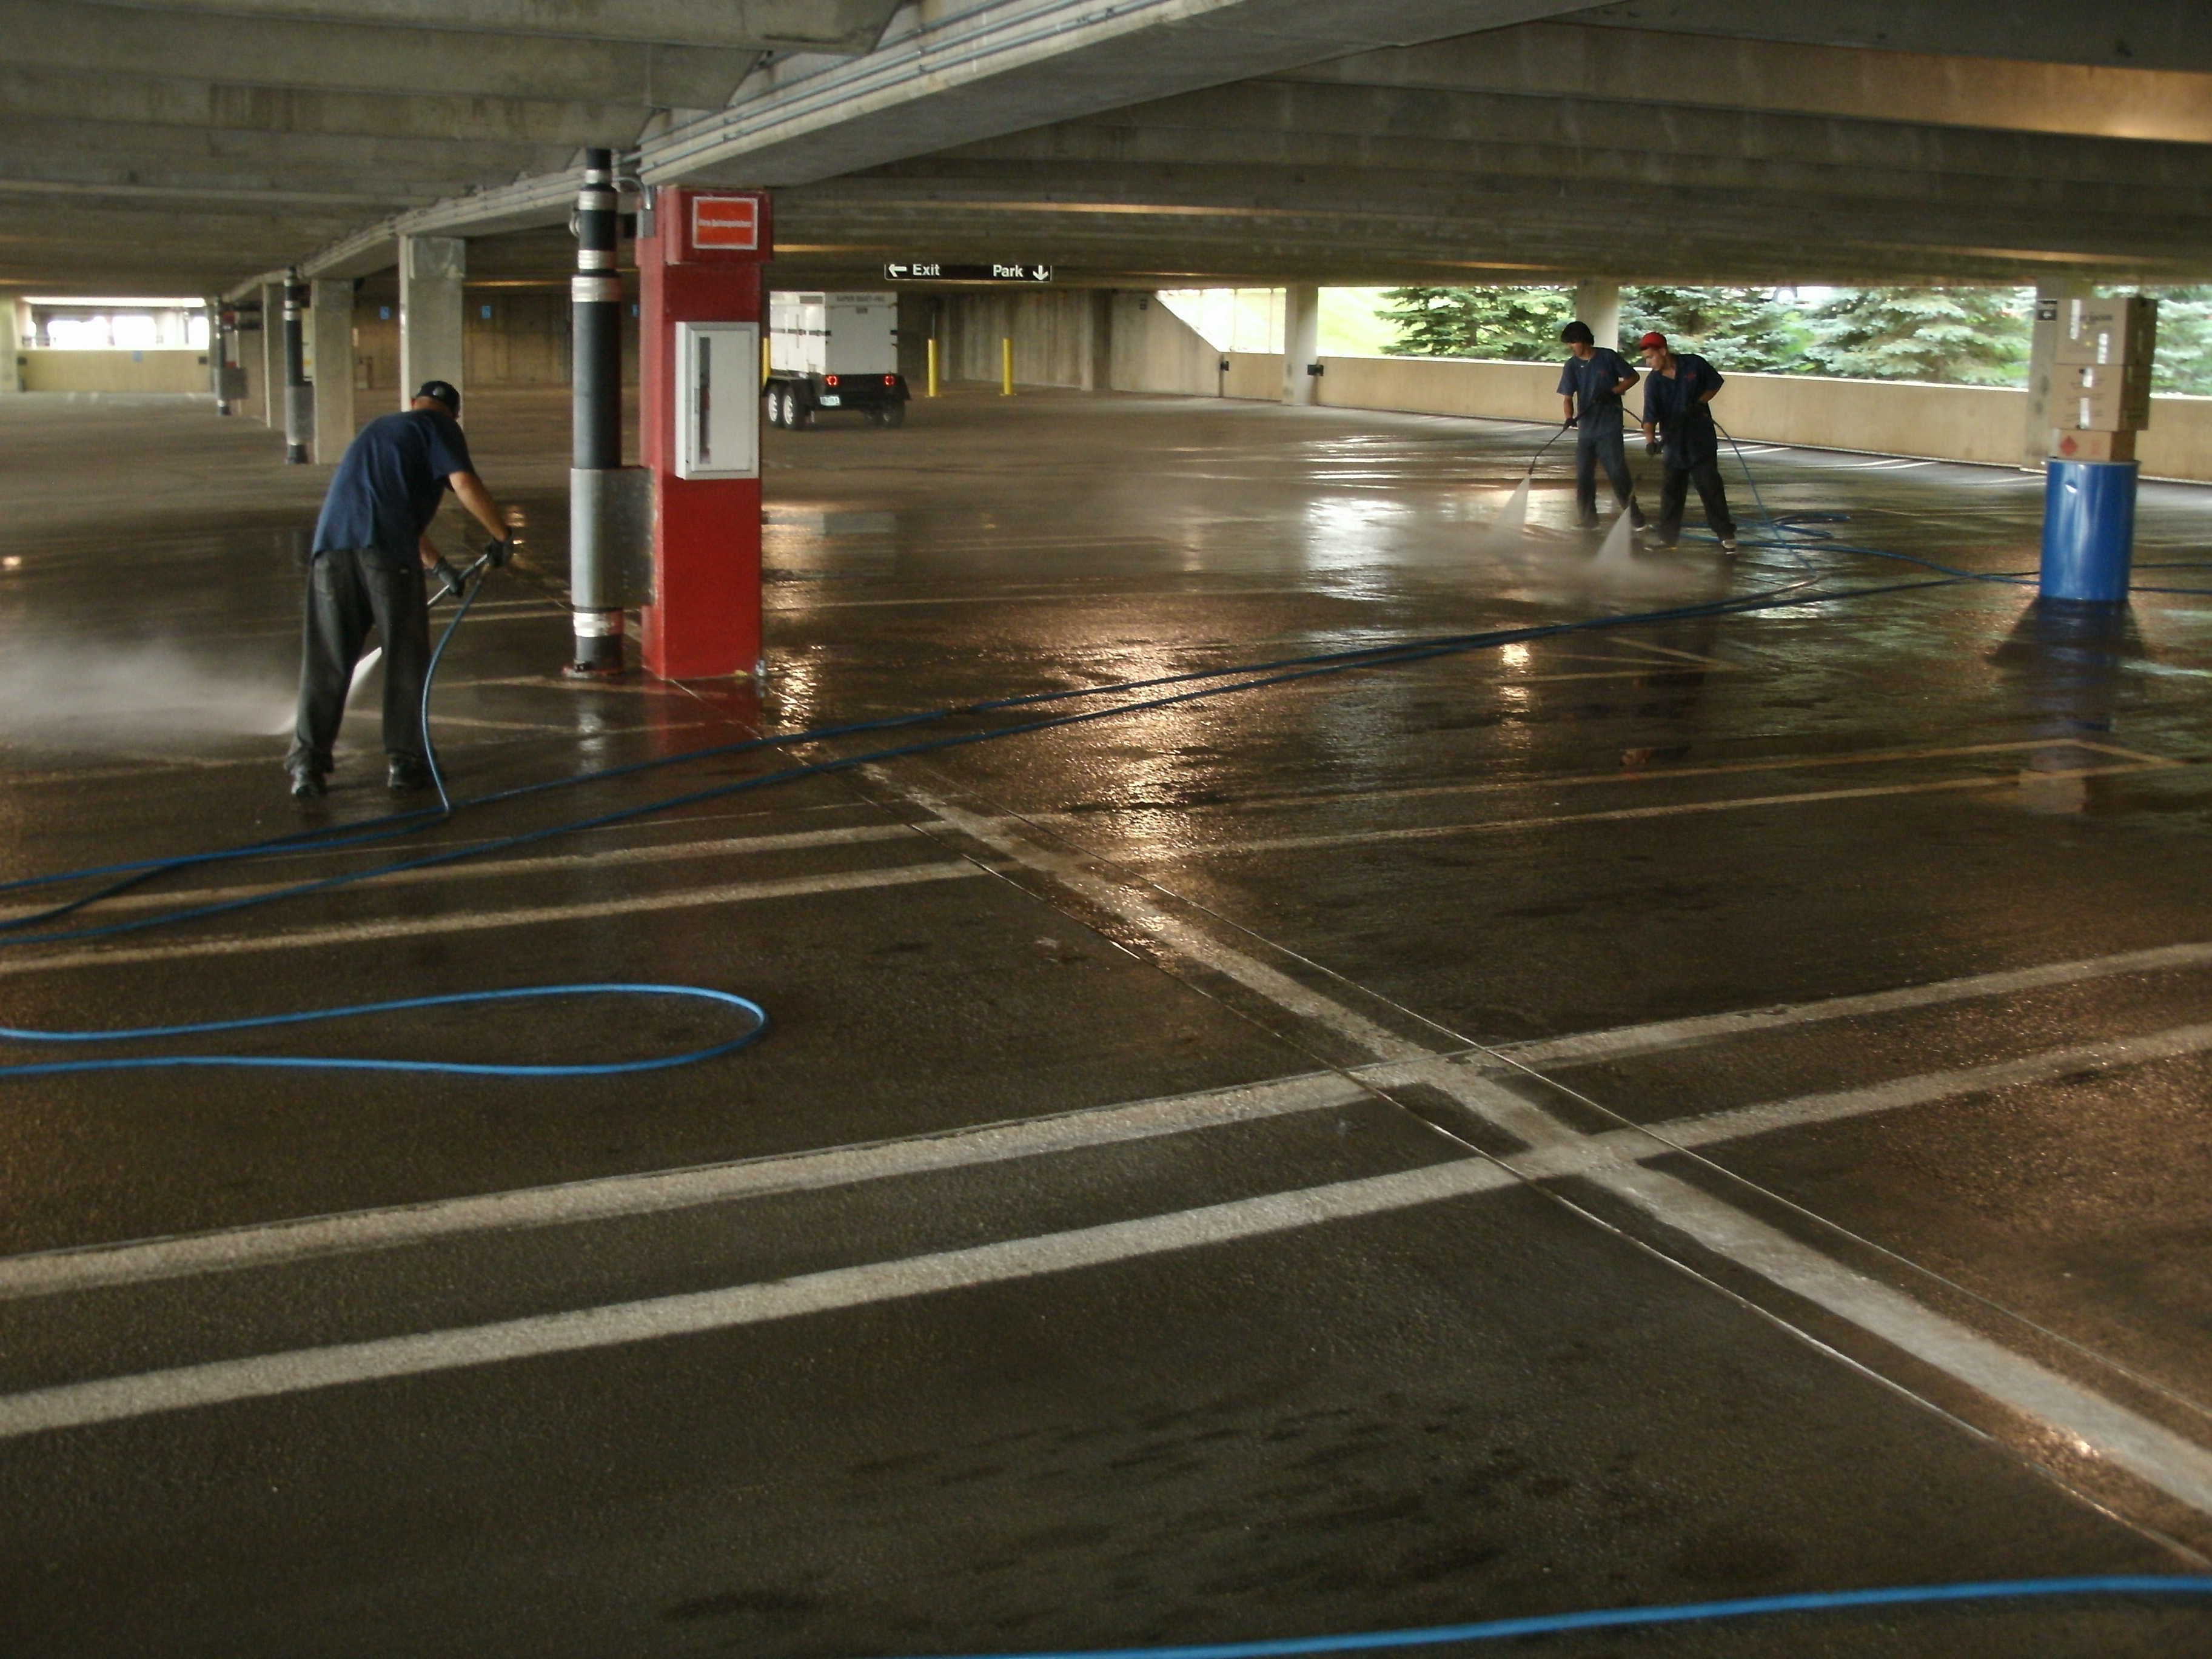 Parking Garage Cleaning Using A Fire Hose New Video Added